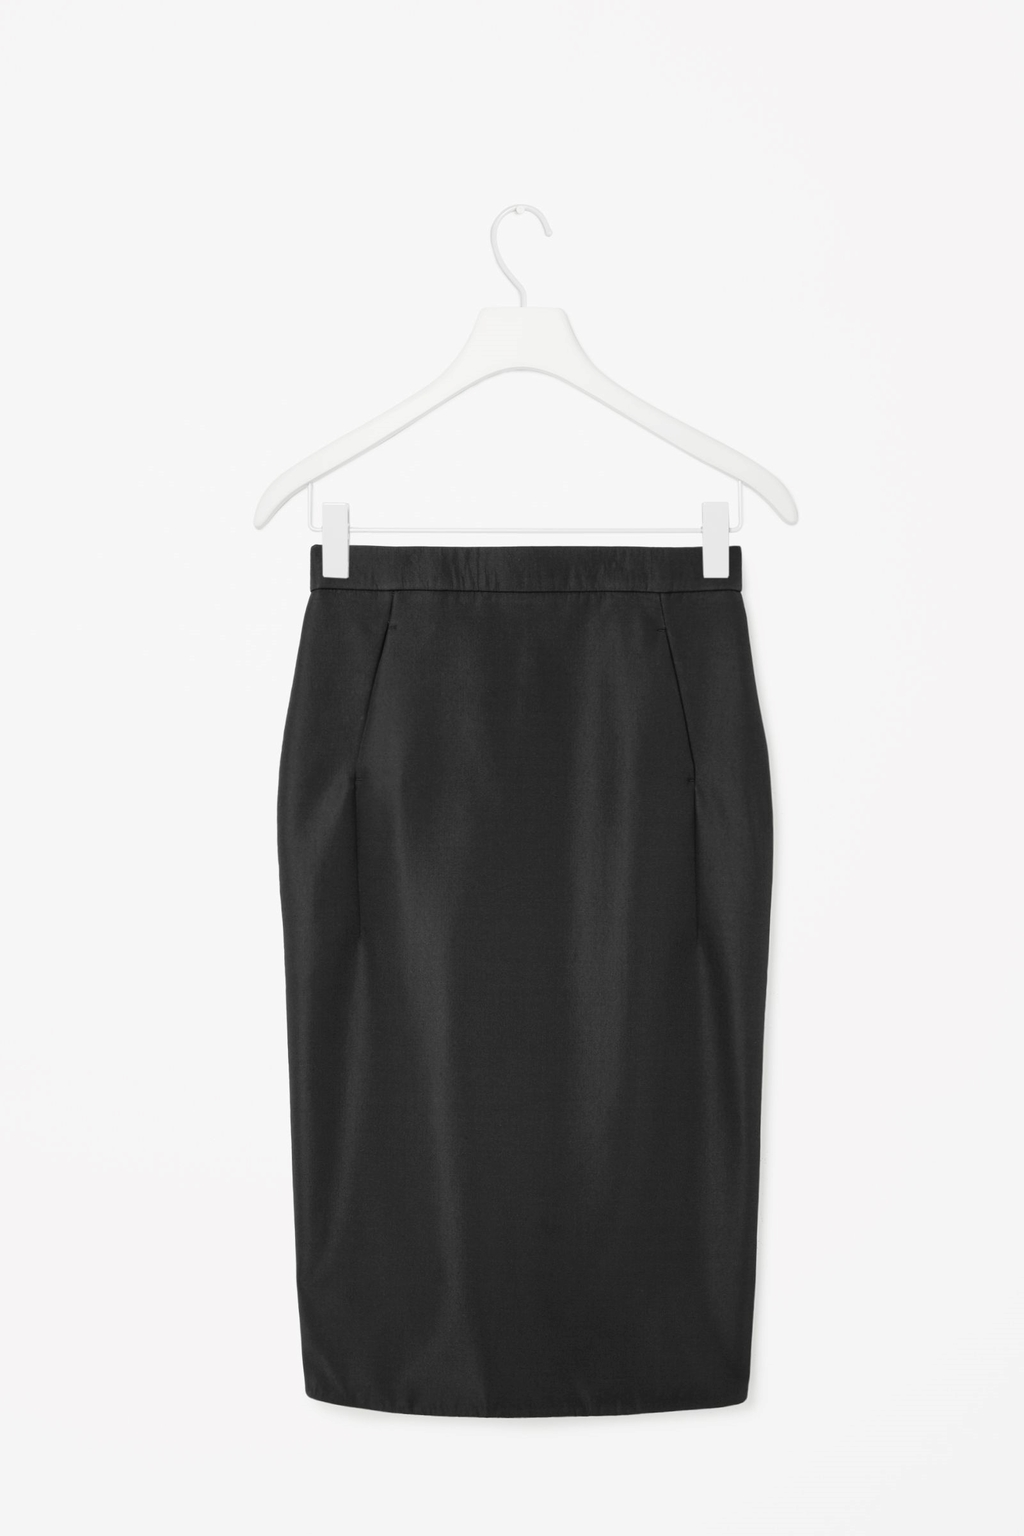 Technical Pencil Skirt - pattern: plain; style: pencil; fit: tailored/fitted; waist: mid/regular rise; predominant colour: black; occasions: evening, work, occasion, creative work; length: on the knee; pattern type: fabric; texture group: woven light midweight; season: s/s 2015; wardrobe: basic